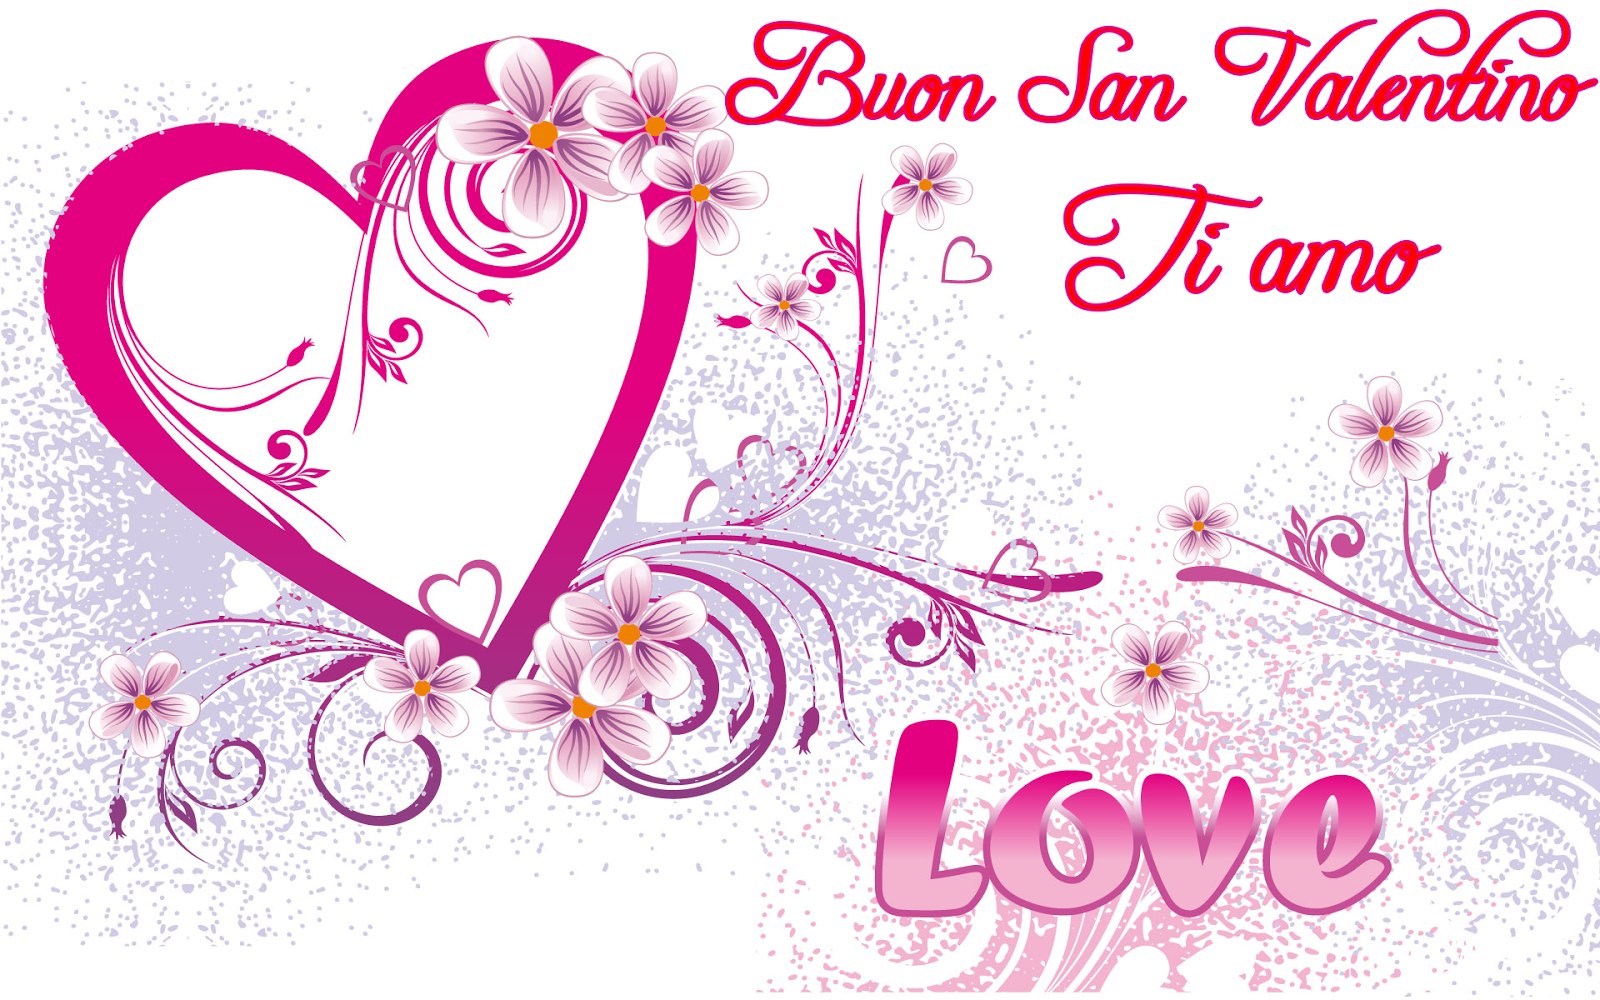 Wish Happy Valentines Day in Italian - Buon San Valentino